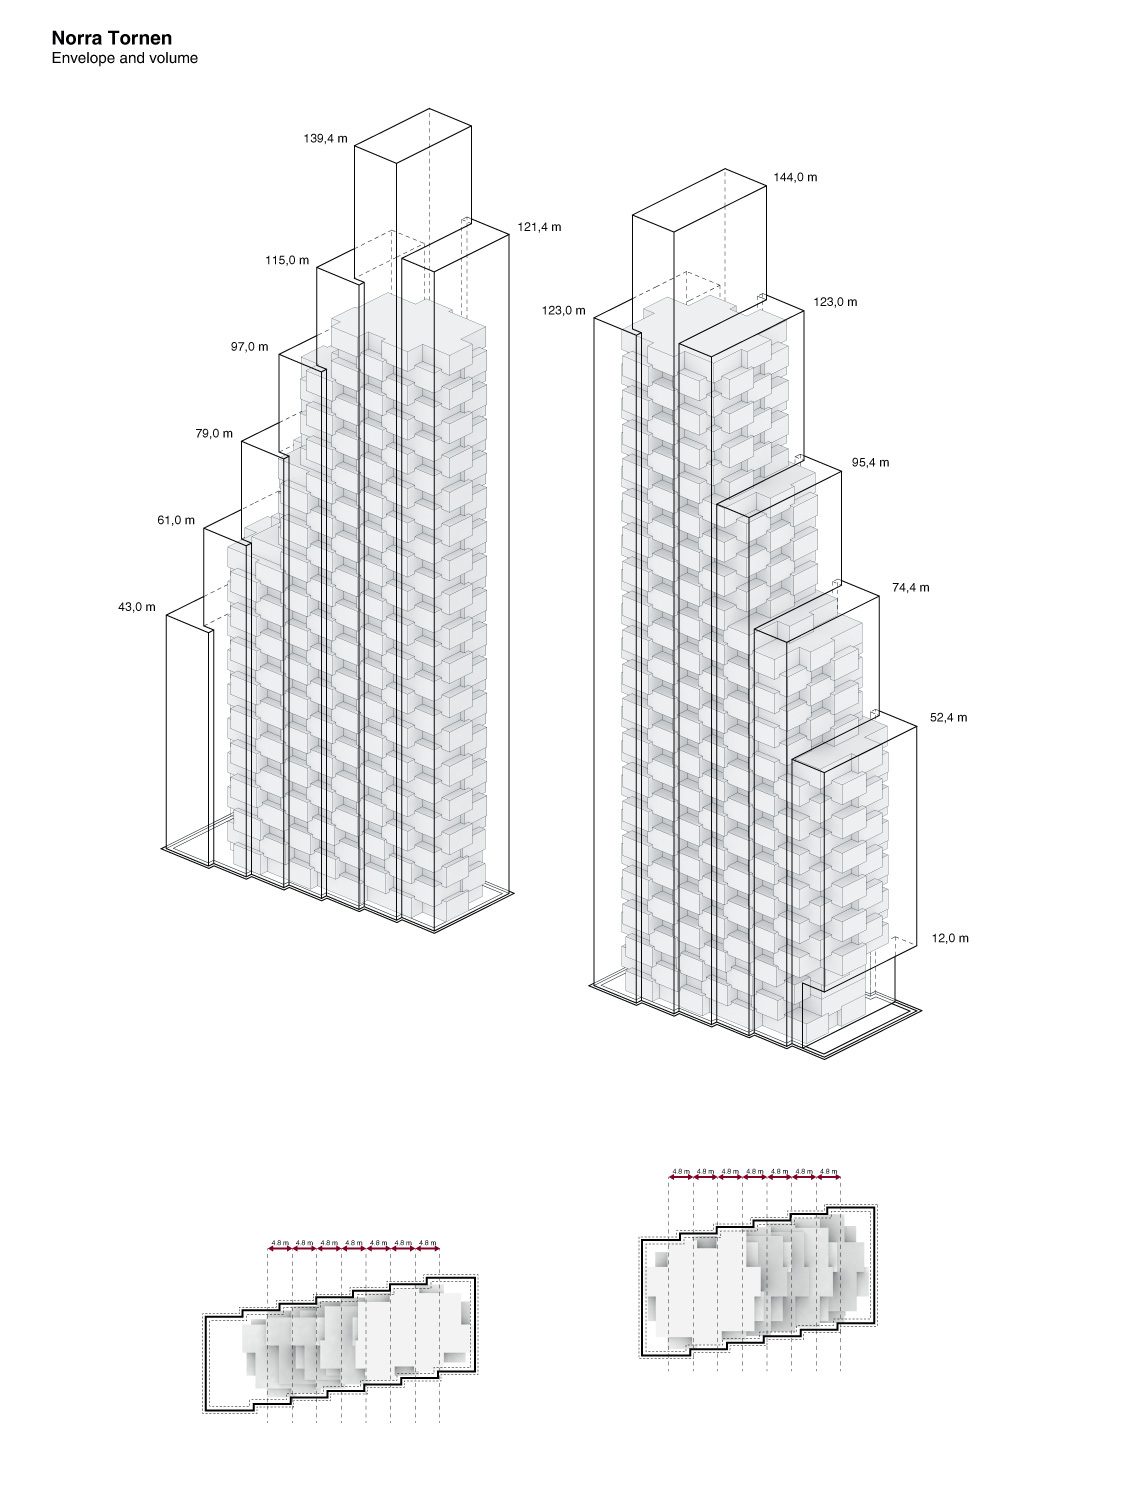 New Details On Oma S Norra Tornen Twin Towers In Stockholm